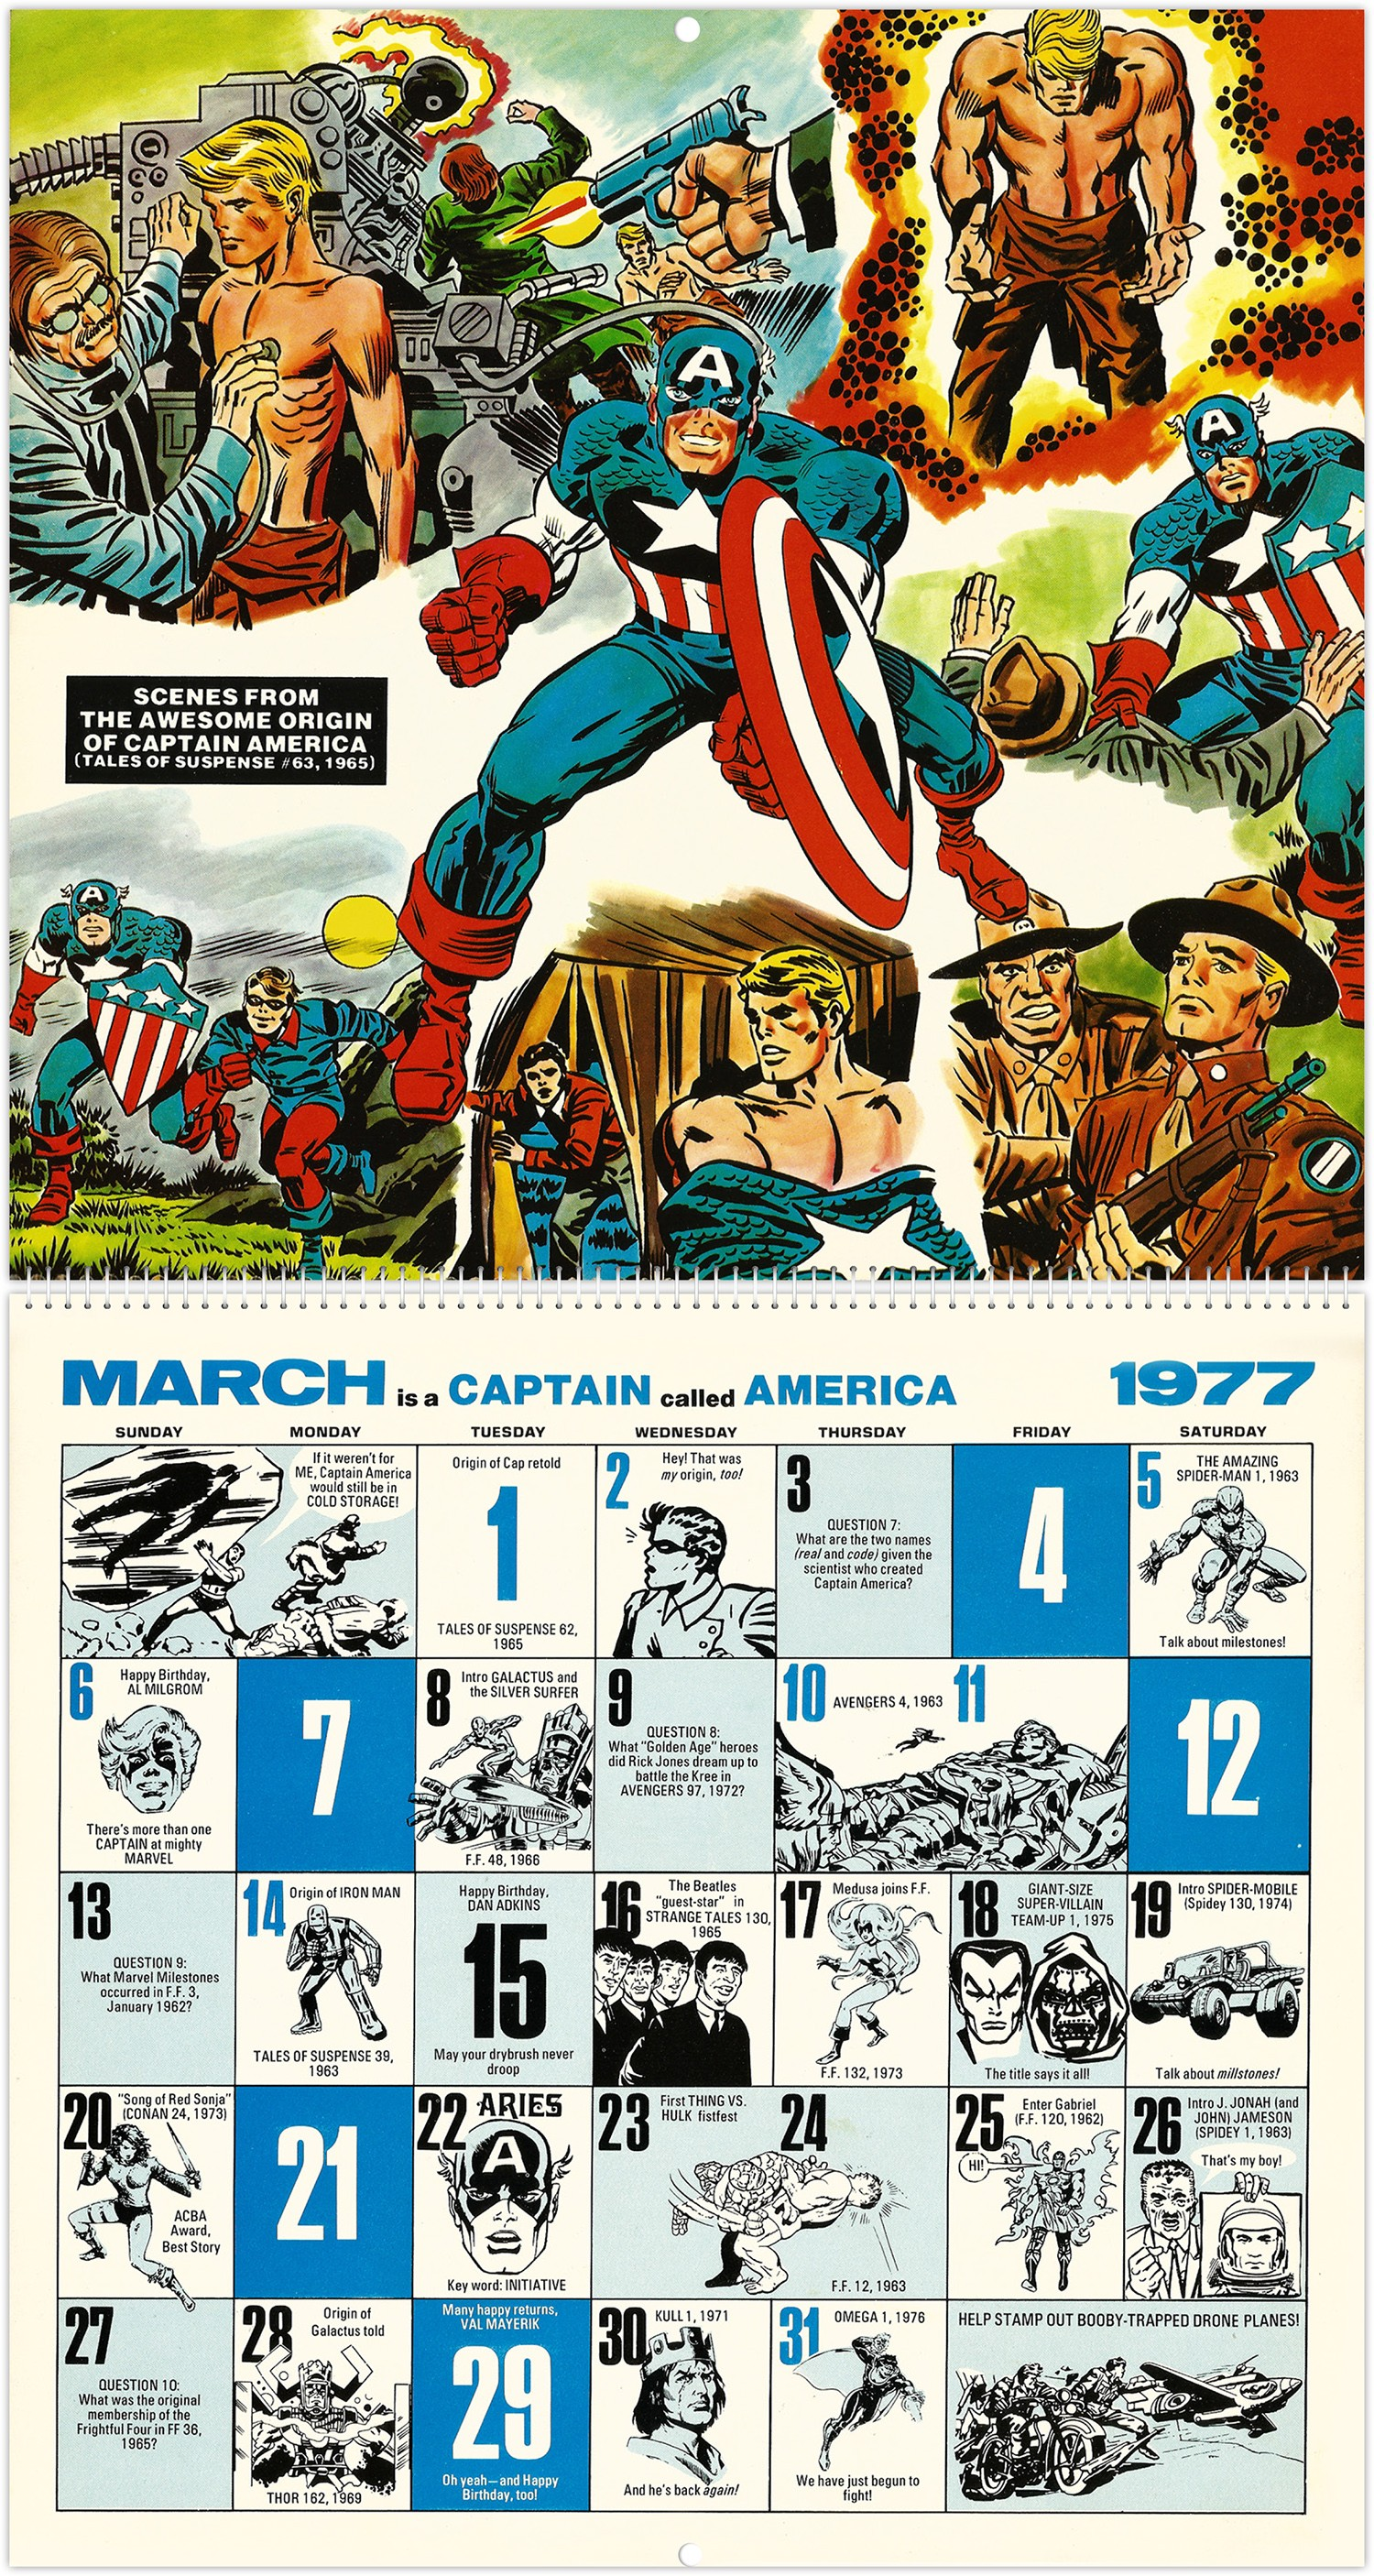 March 1979 Calendar Más Recientes Marvel Ics Memory Album Calendar 1977 Of March 1979 Calendar Más Recientemente Liberado Telugu Localnews Telugulocalnews On Pinterest